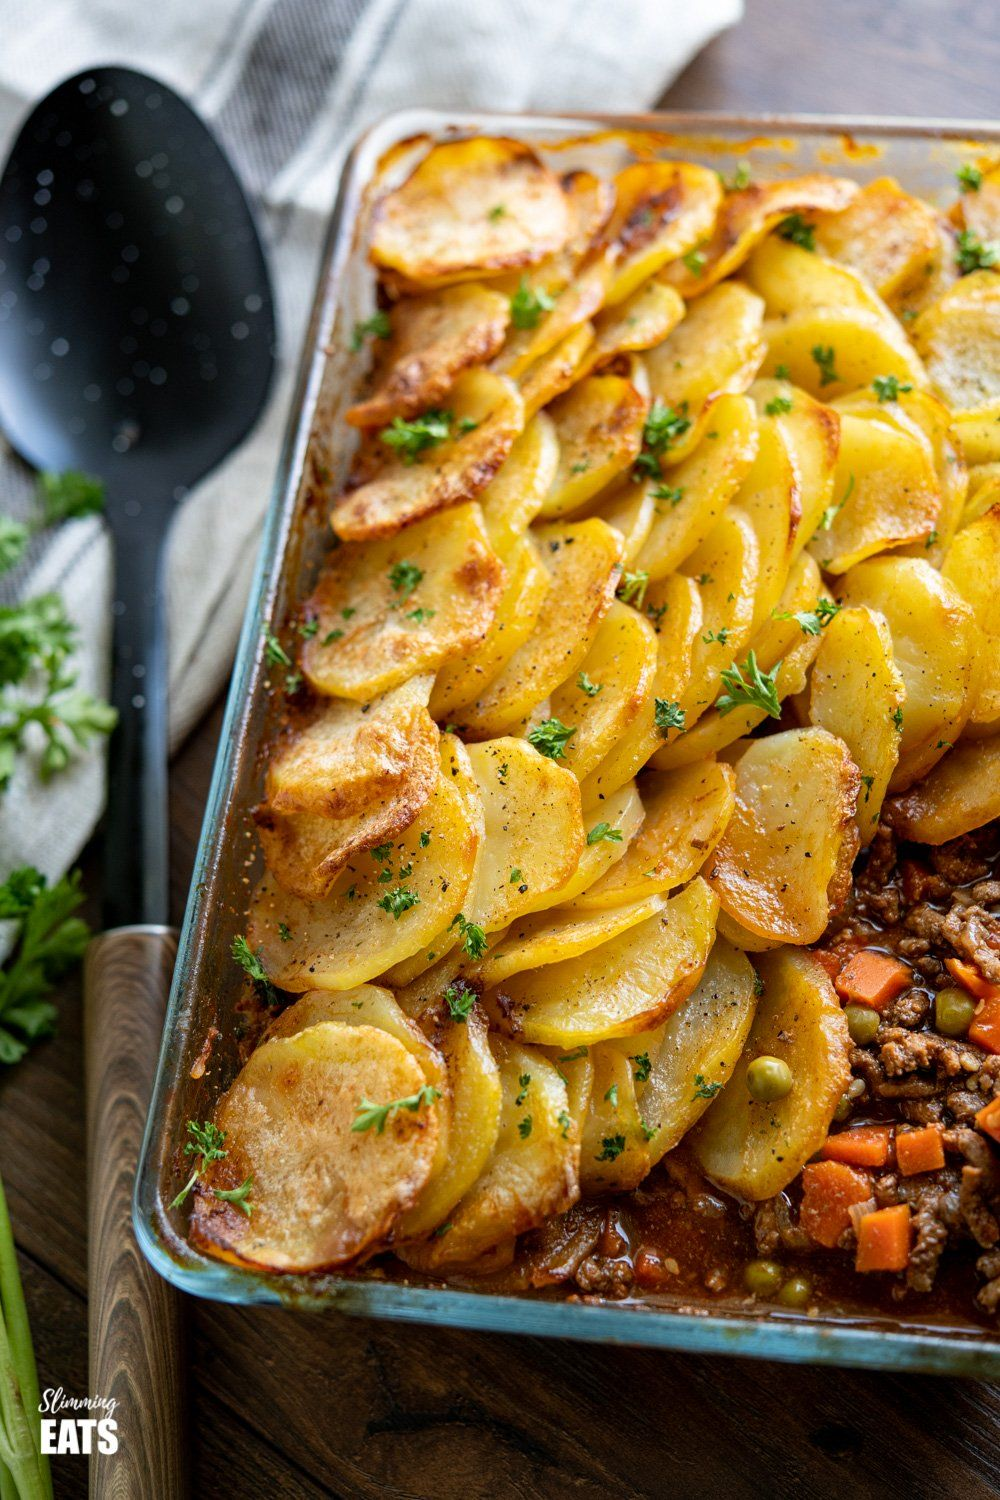 Photo of Crispy Potato Topped Meat Pie (Minced Beef Hotpot) | Slimming Eats